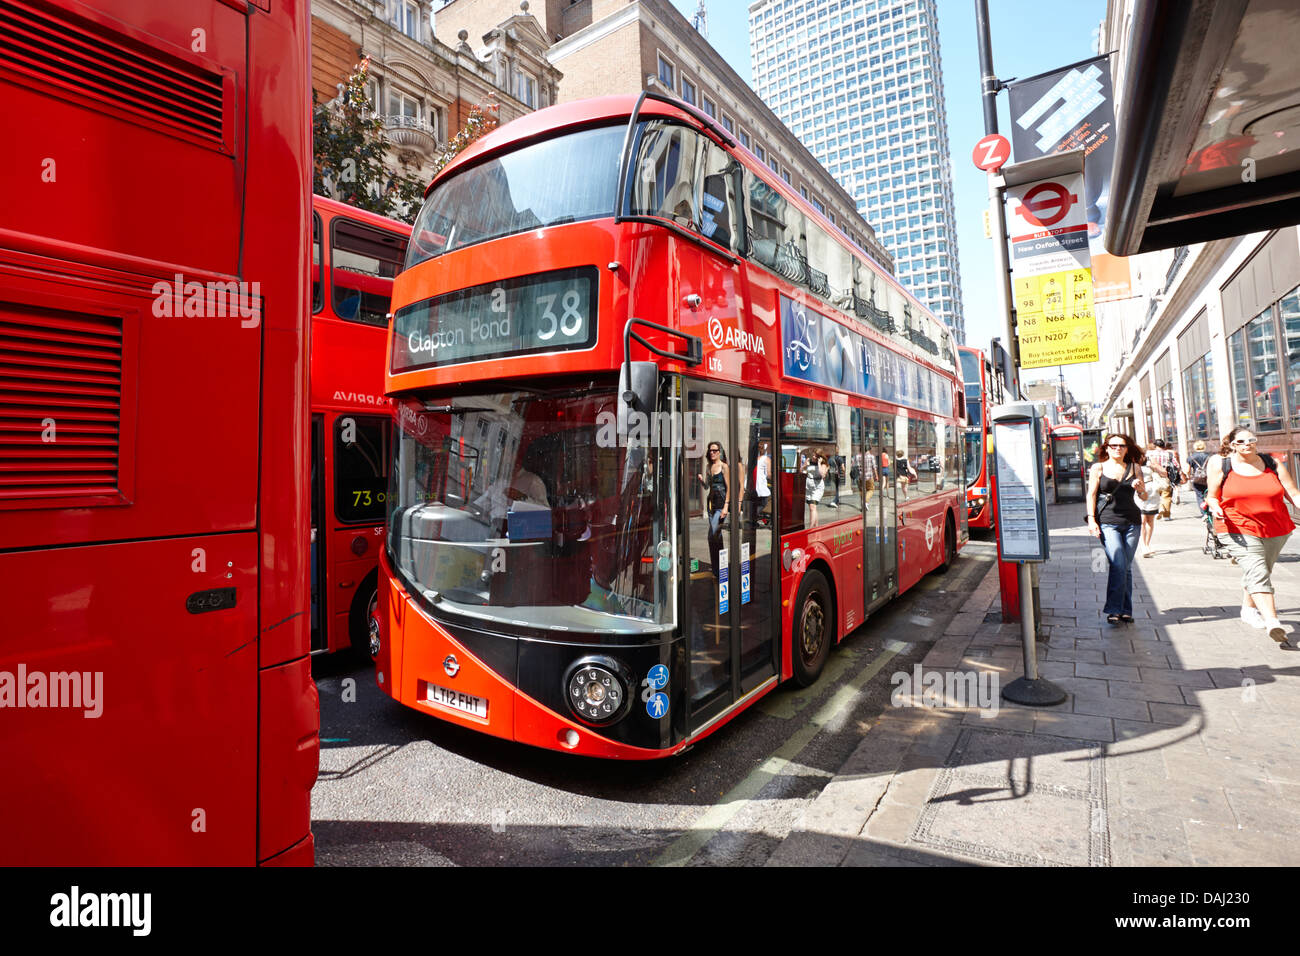 new london routemaster bus on oxford street in central london, england uk - Stock Image